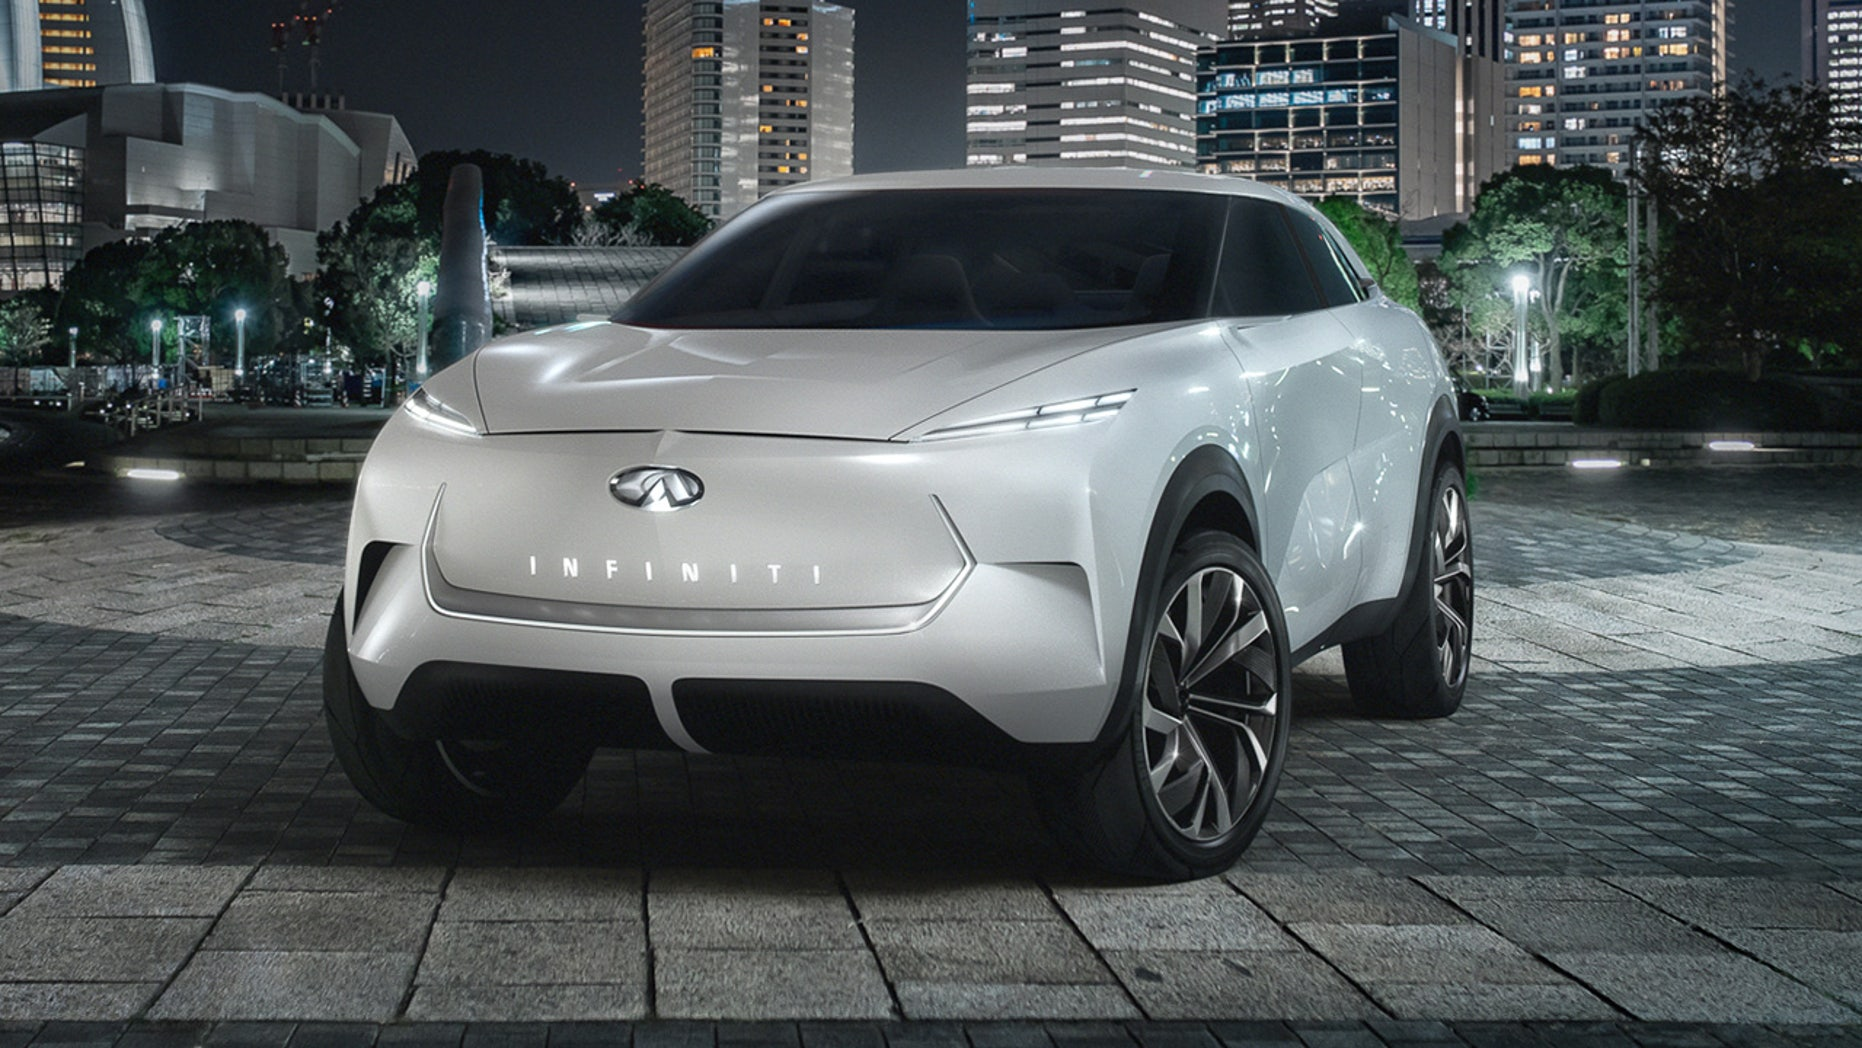 Infiniti QX Inspiration previews is upcoming Tesla-fighting electric SUV | Fox News